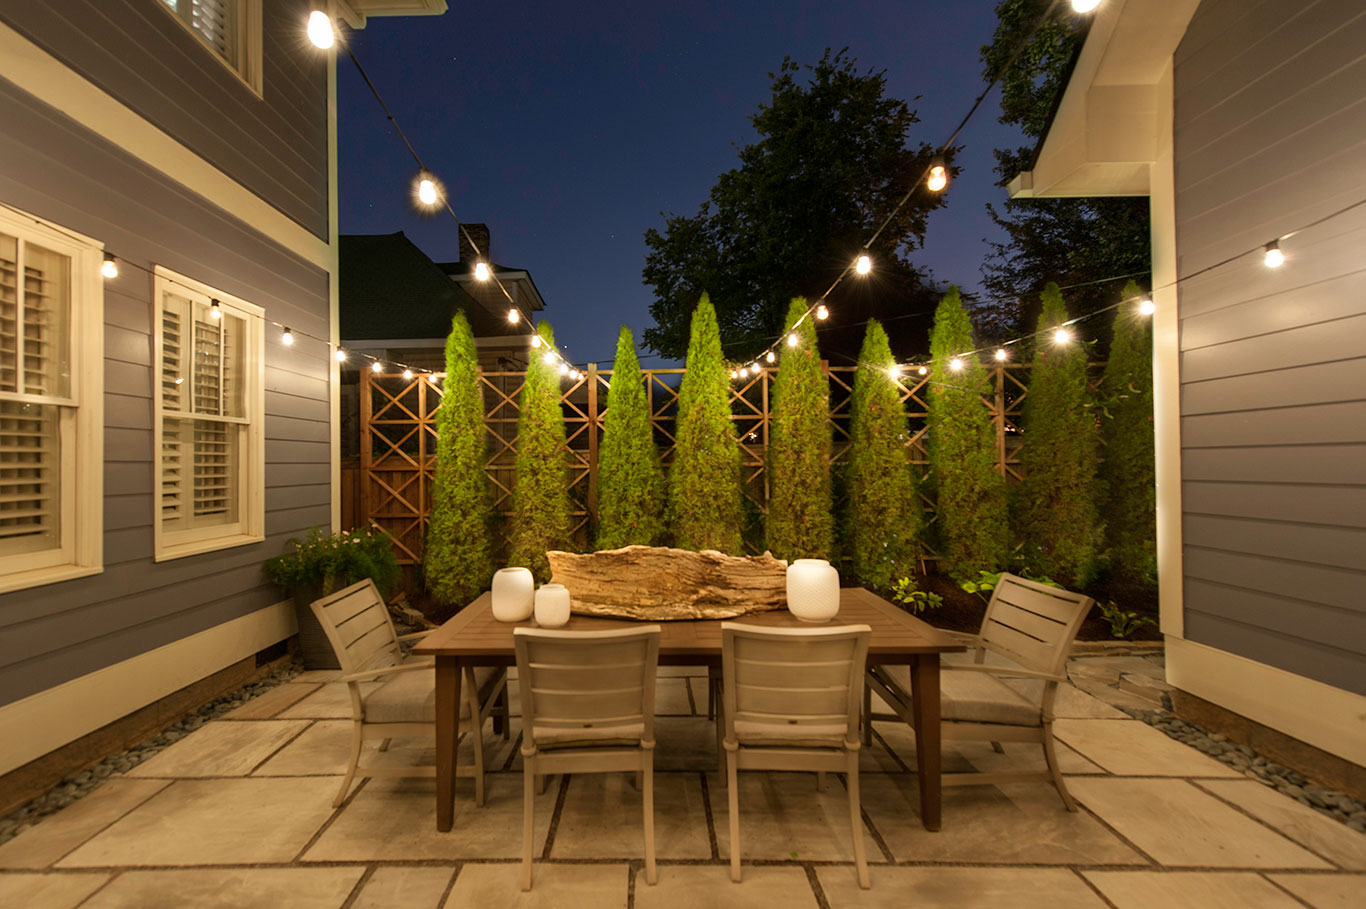 The Different Types Of Outdoor Lighting For Landscaping